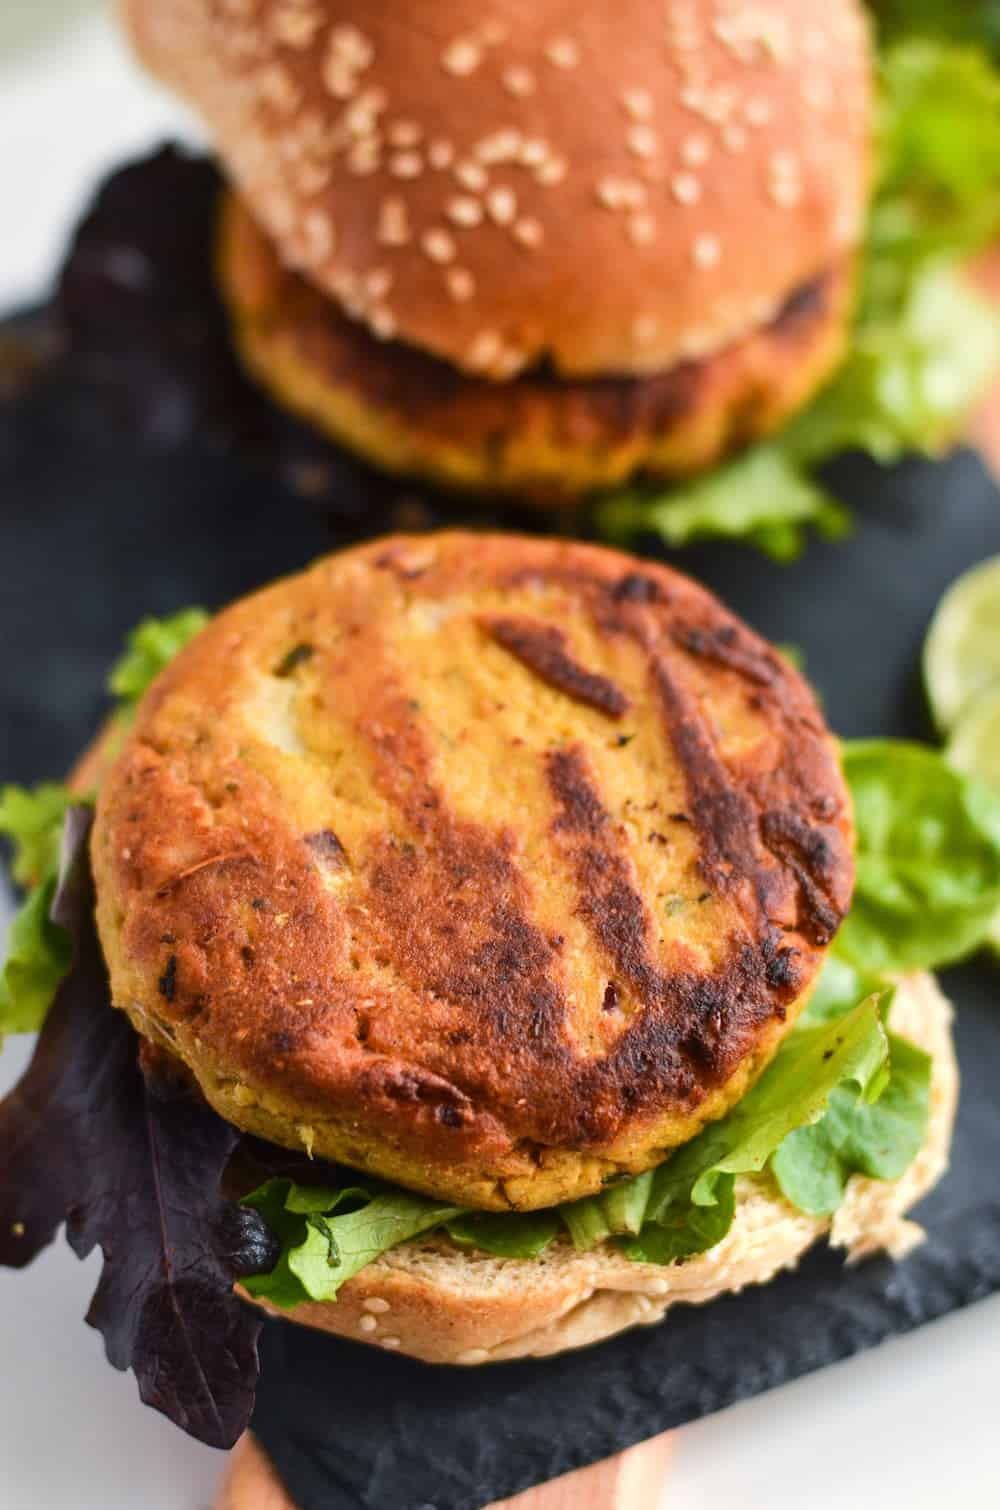 If you're interested in trying jackfruit recipes, these curry burger patties are for you! They are the perfect substitute for red meat. So delicious!